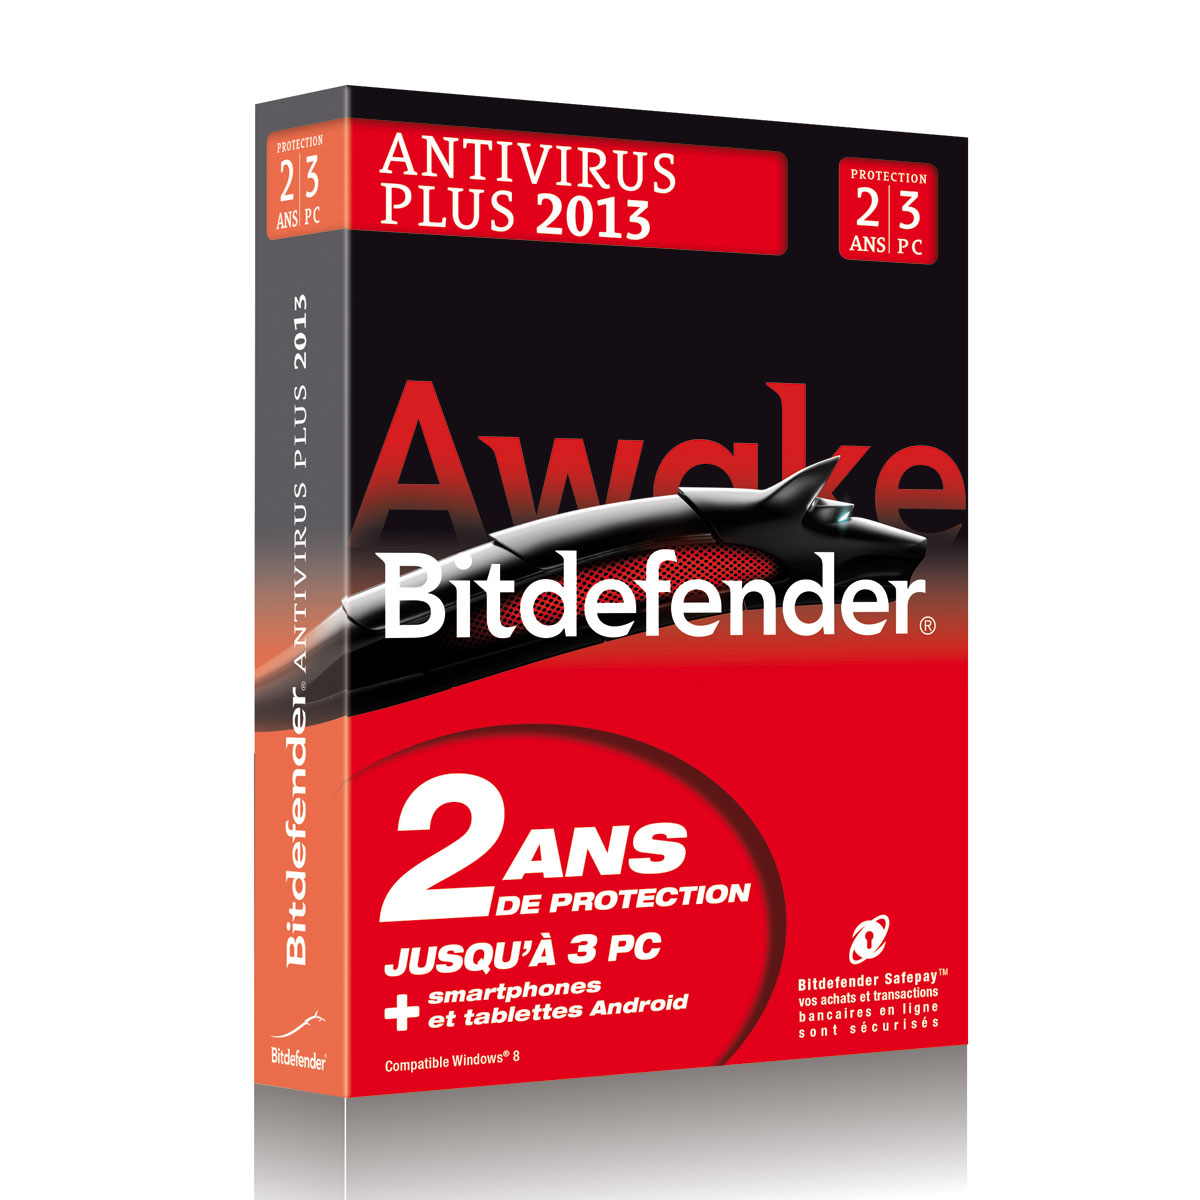 bitdefender antivirus plus 2013 licence 2 ans 3 postes logiciel s curit bitdefender sur. Black Bedroom Furniture Sets. Home Design Ideas